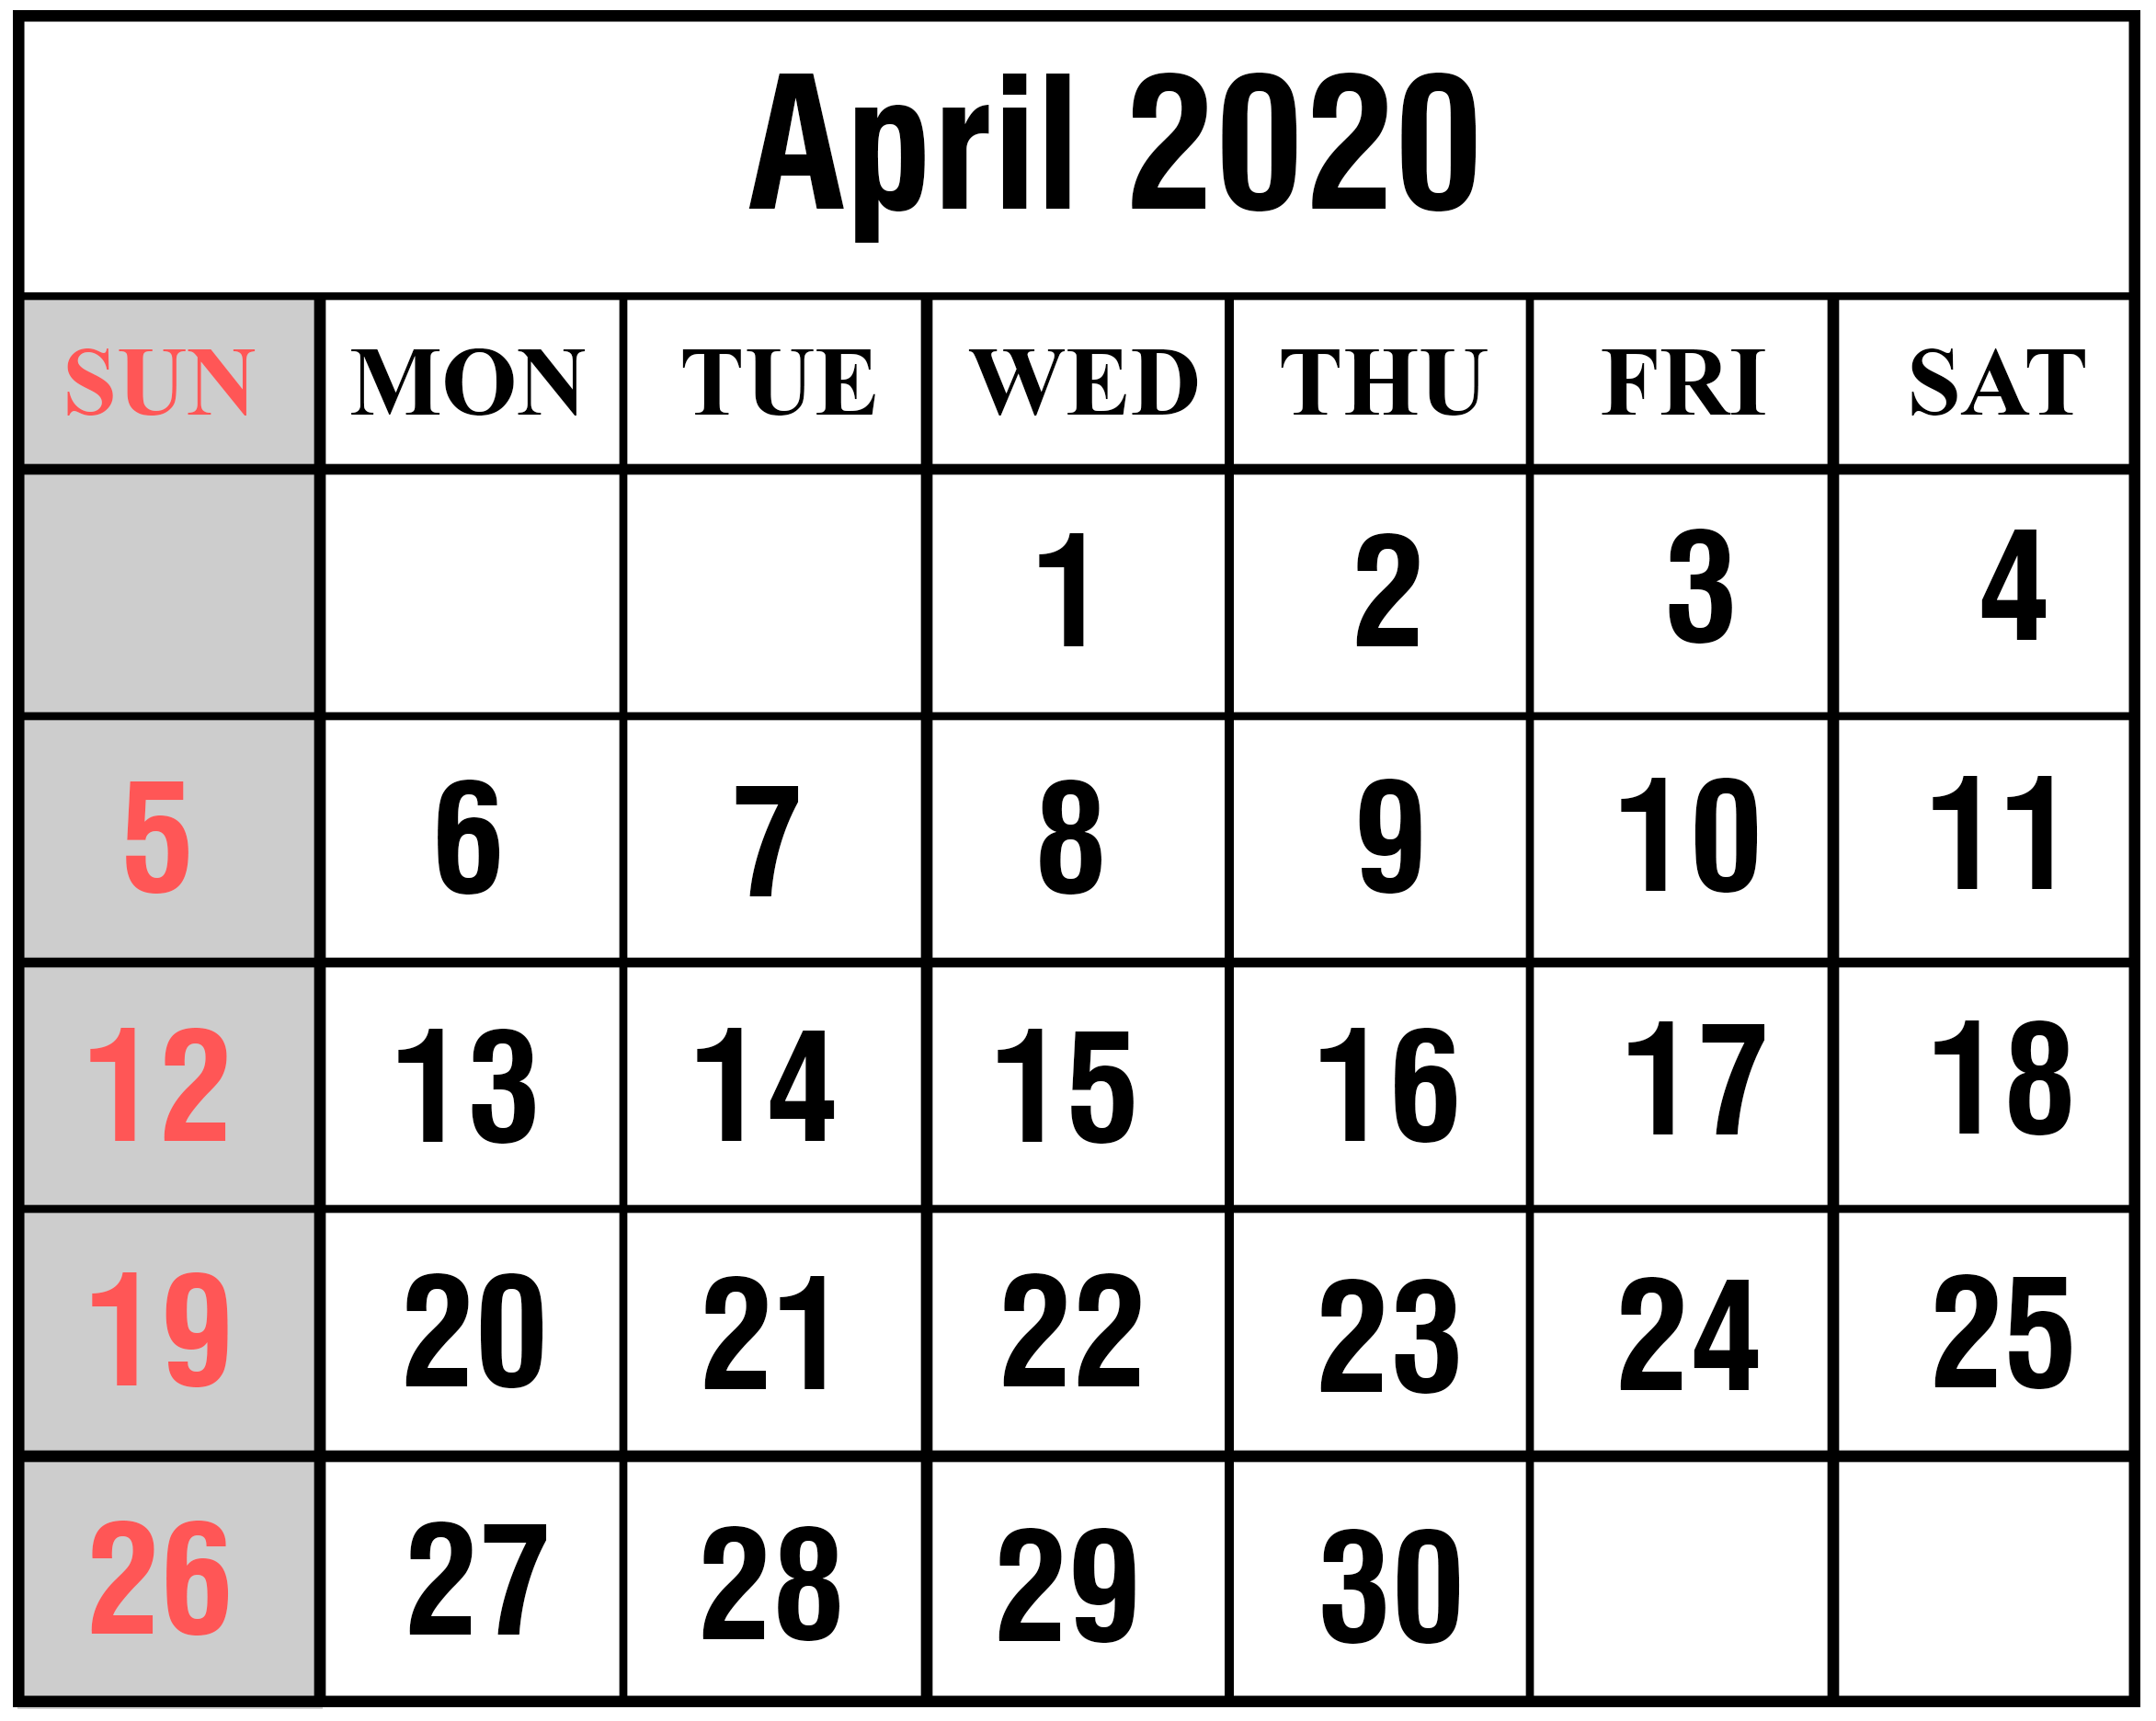 April 2020 Calendar Printable Monthly calendar template June 2345x1872